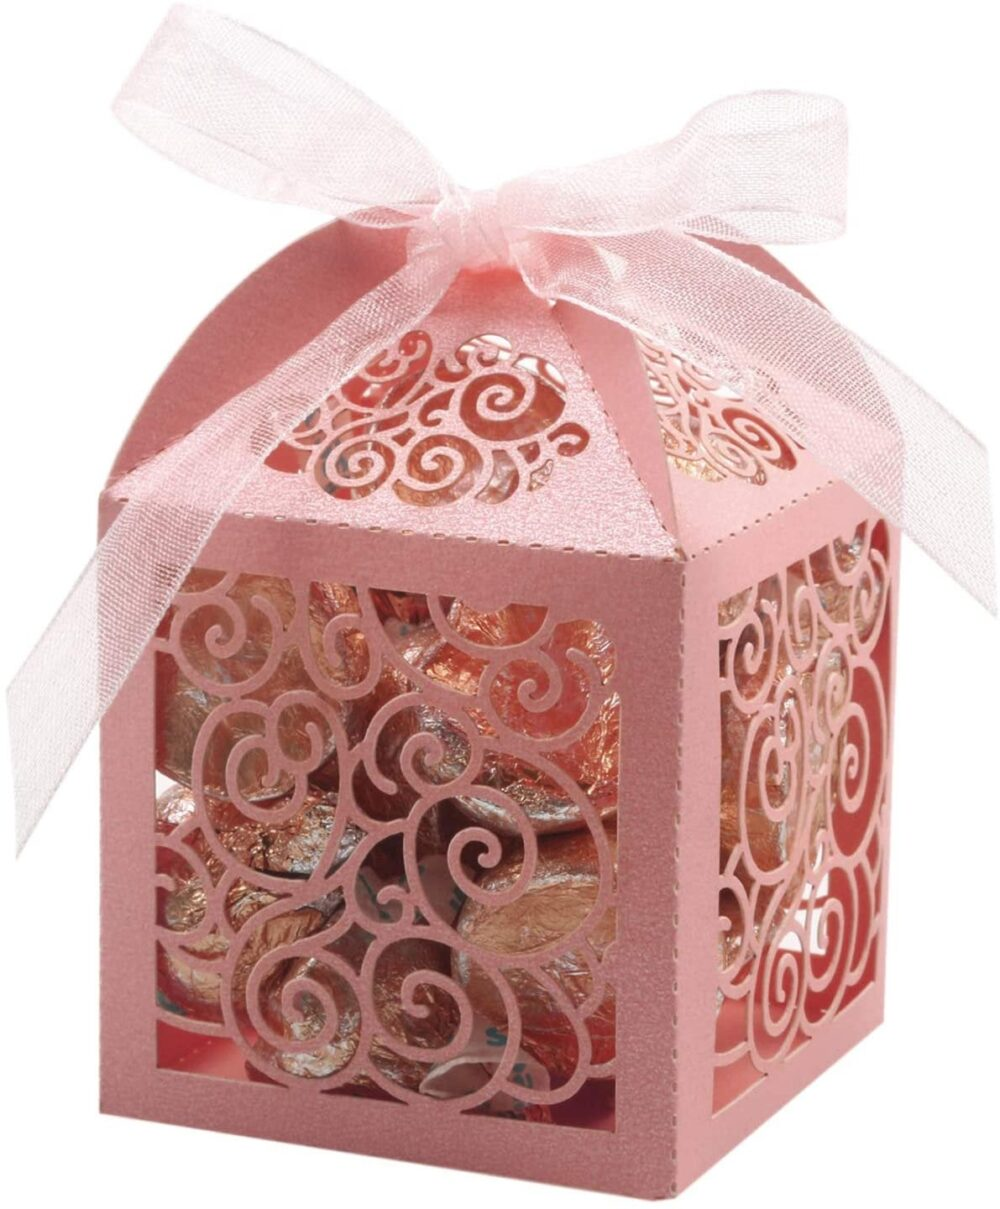 100 Pack Wedding Favor Boxes Laser Cut Party Box Small Gift Lace Candy For Bridal Shower Baby Birthd